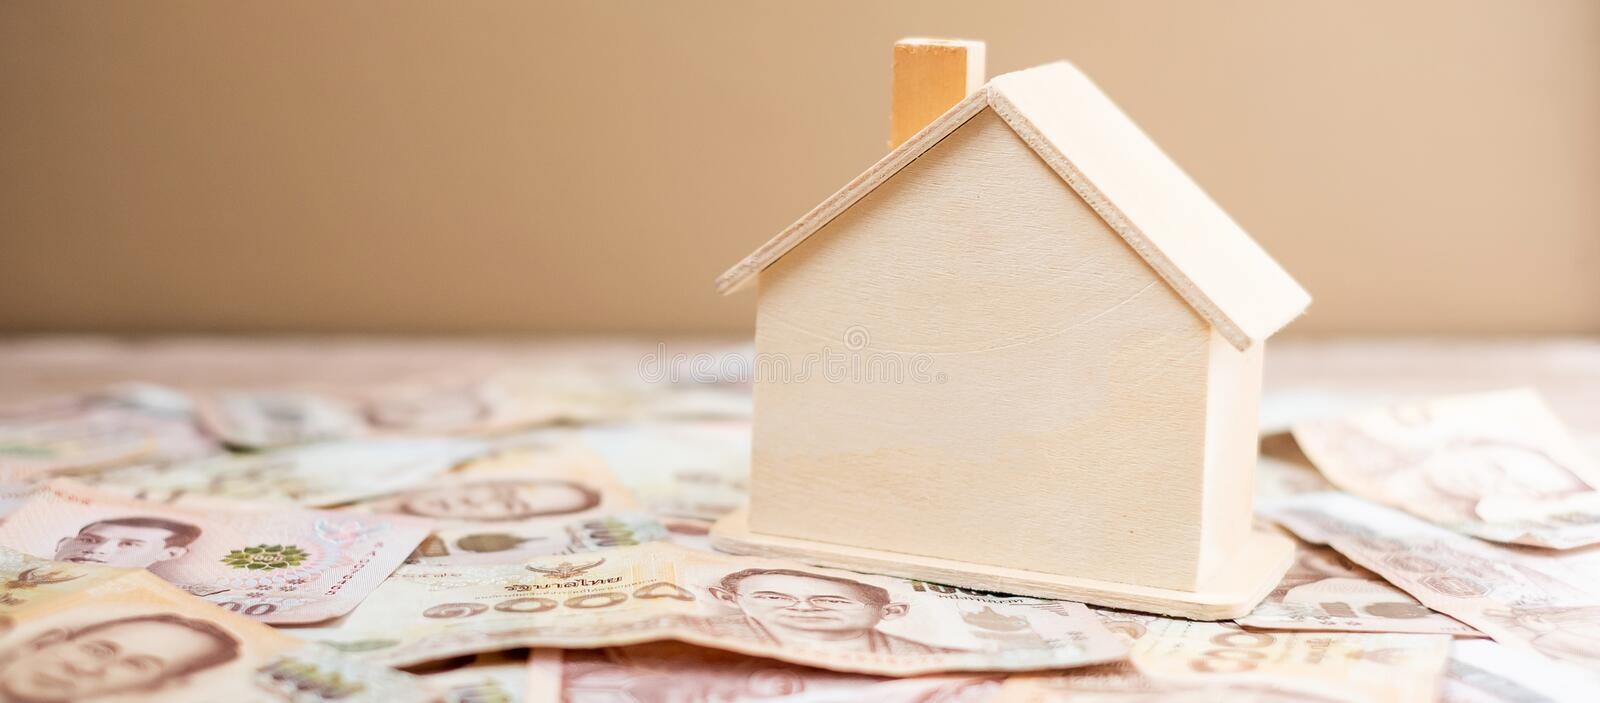 Wood house model, calculator and money , Thai baht banknote. real estate, Property investment, home mortgage financial and savings. Concepts royalty free stock photos